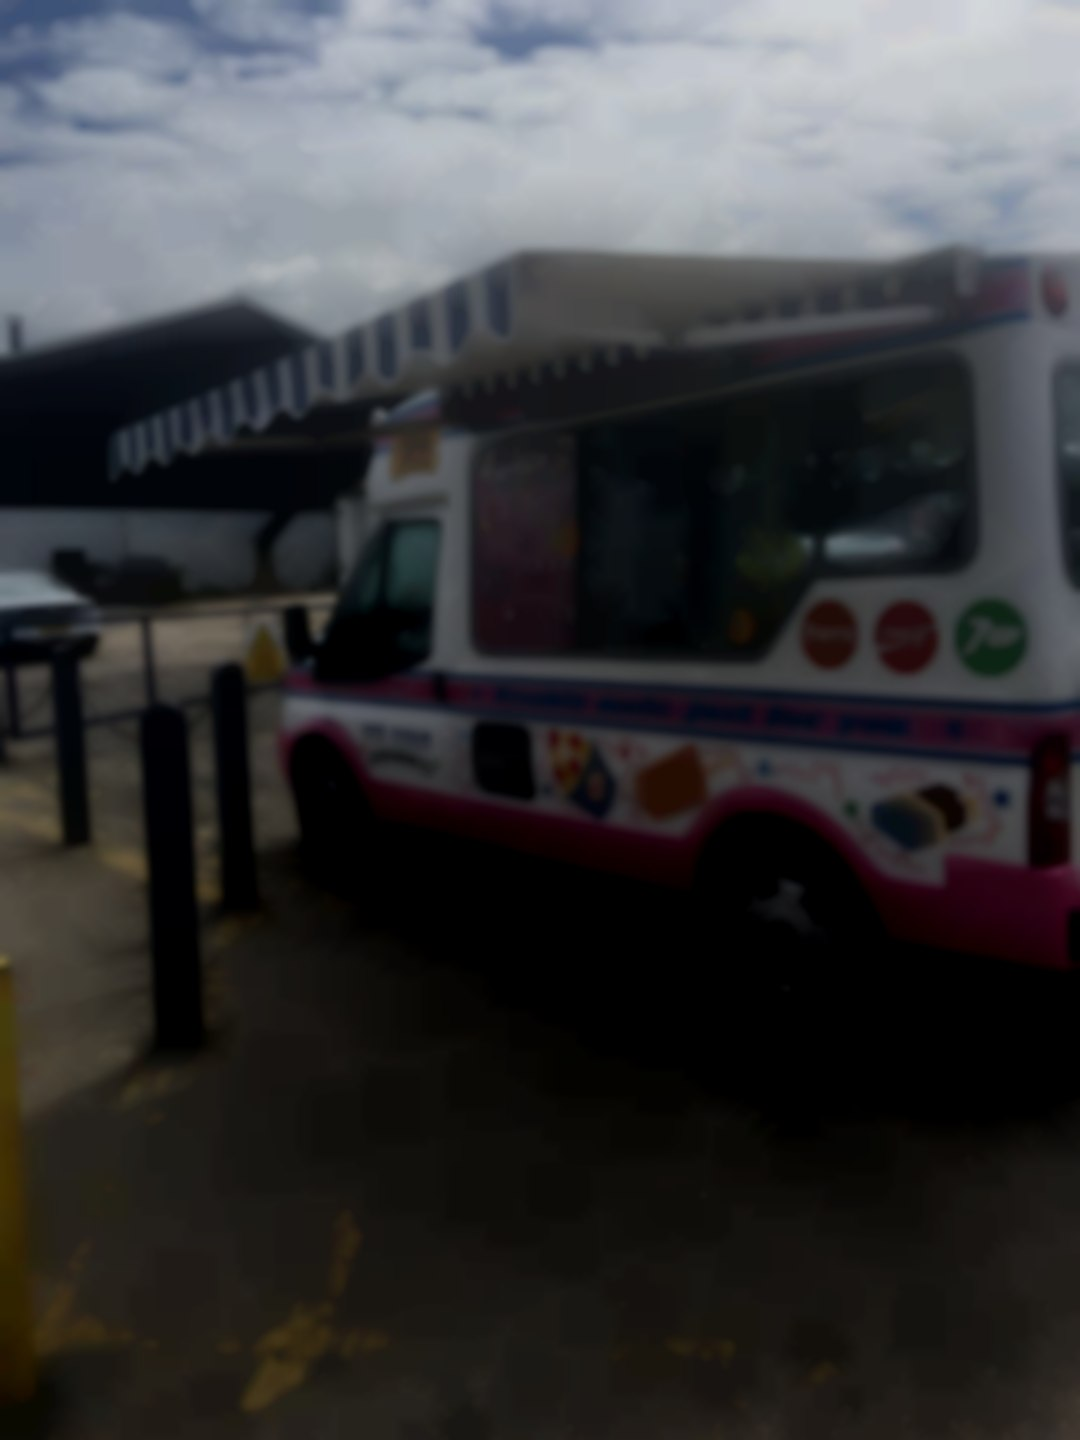 MR Whippy ice cream hire weddings, parties corporate events fete's